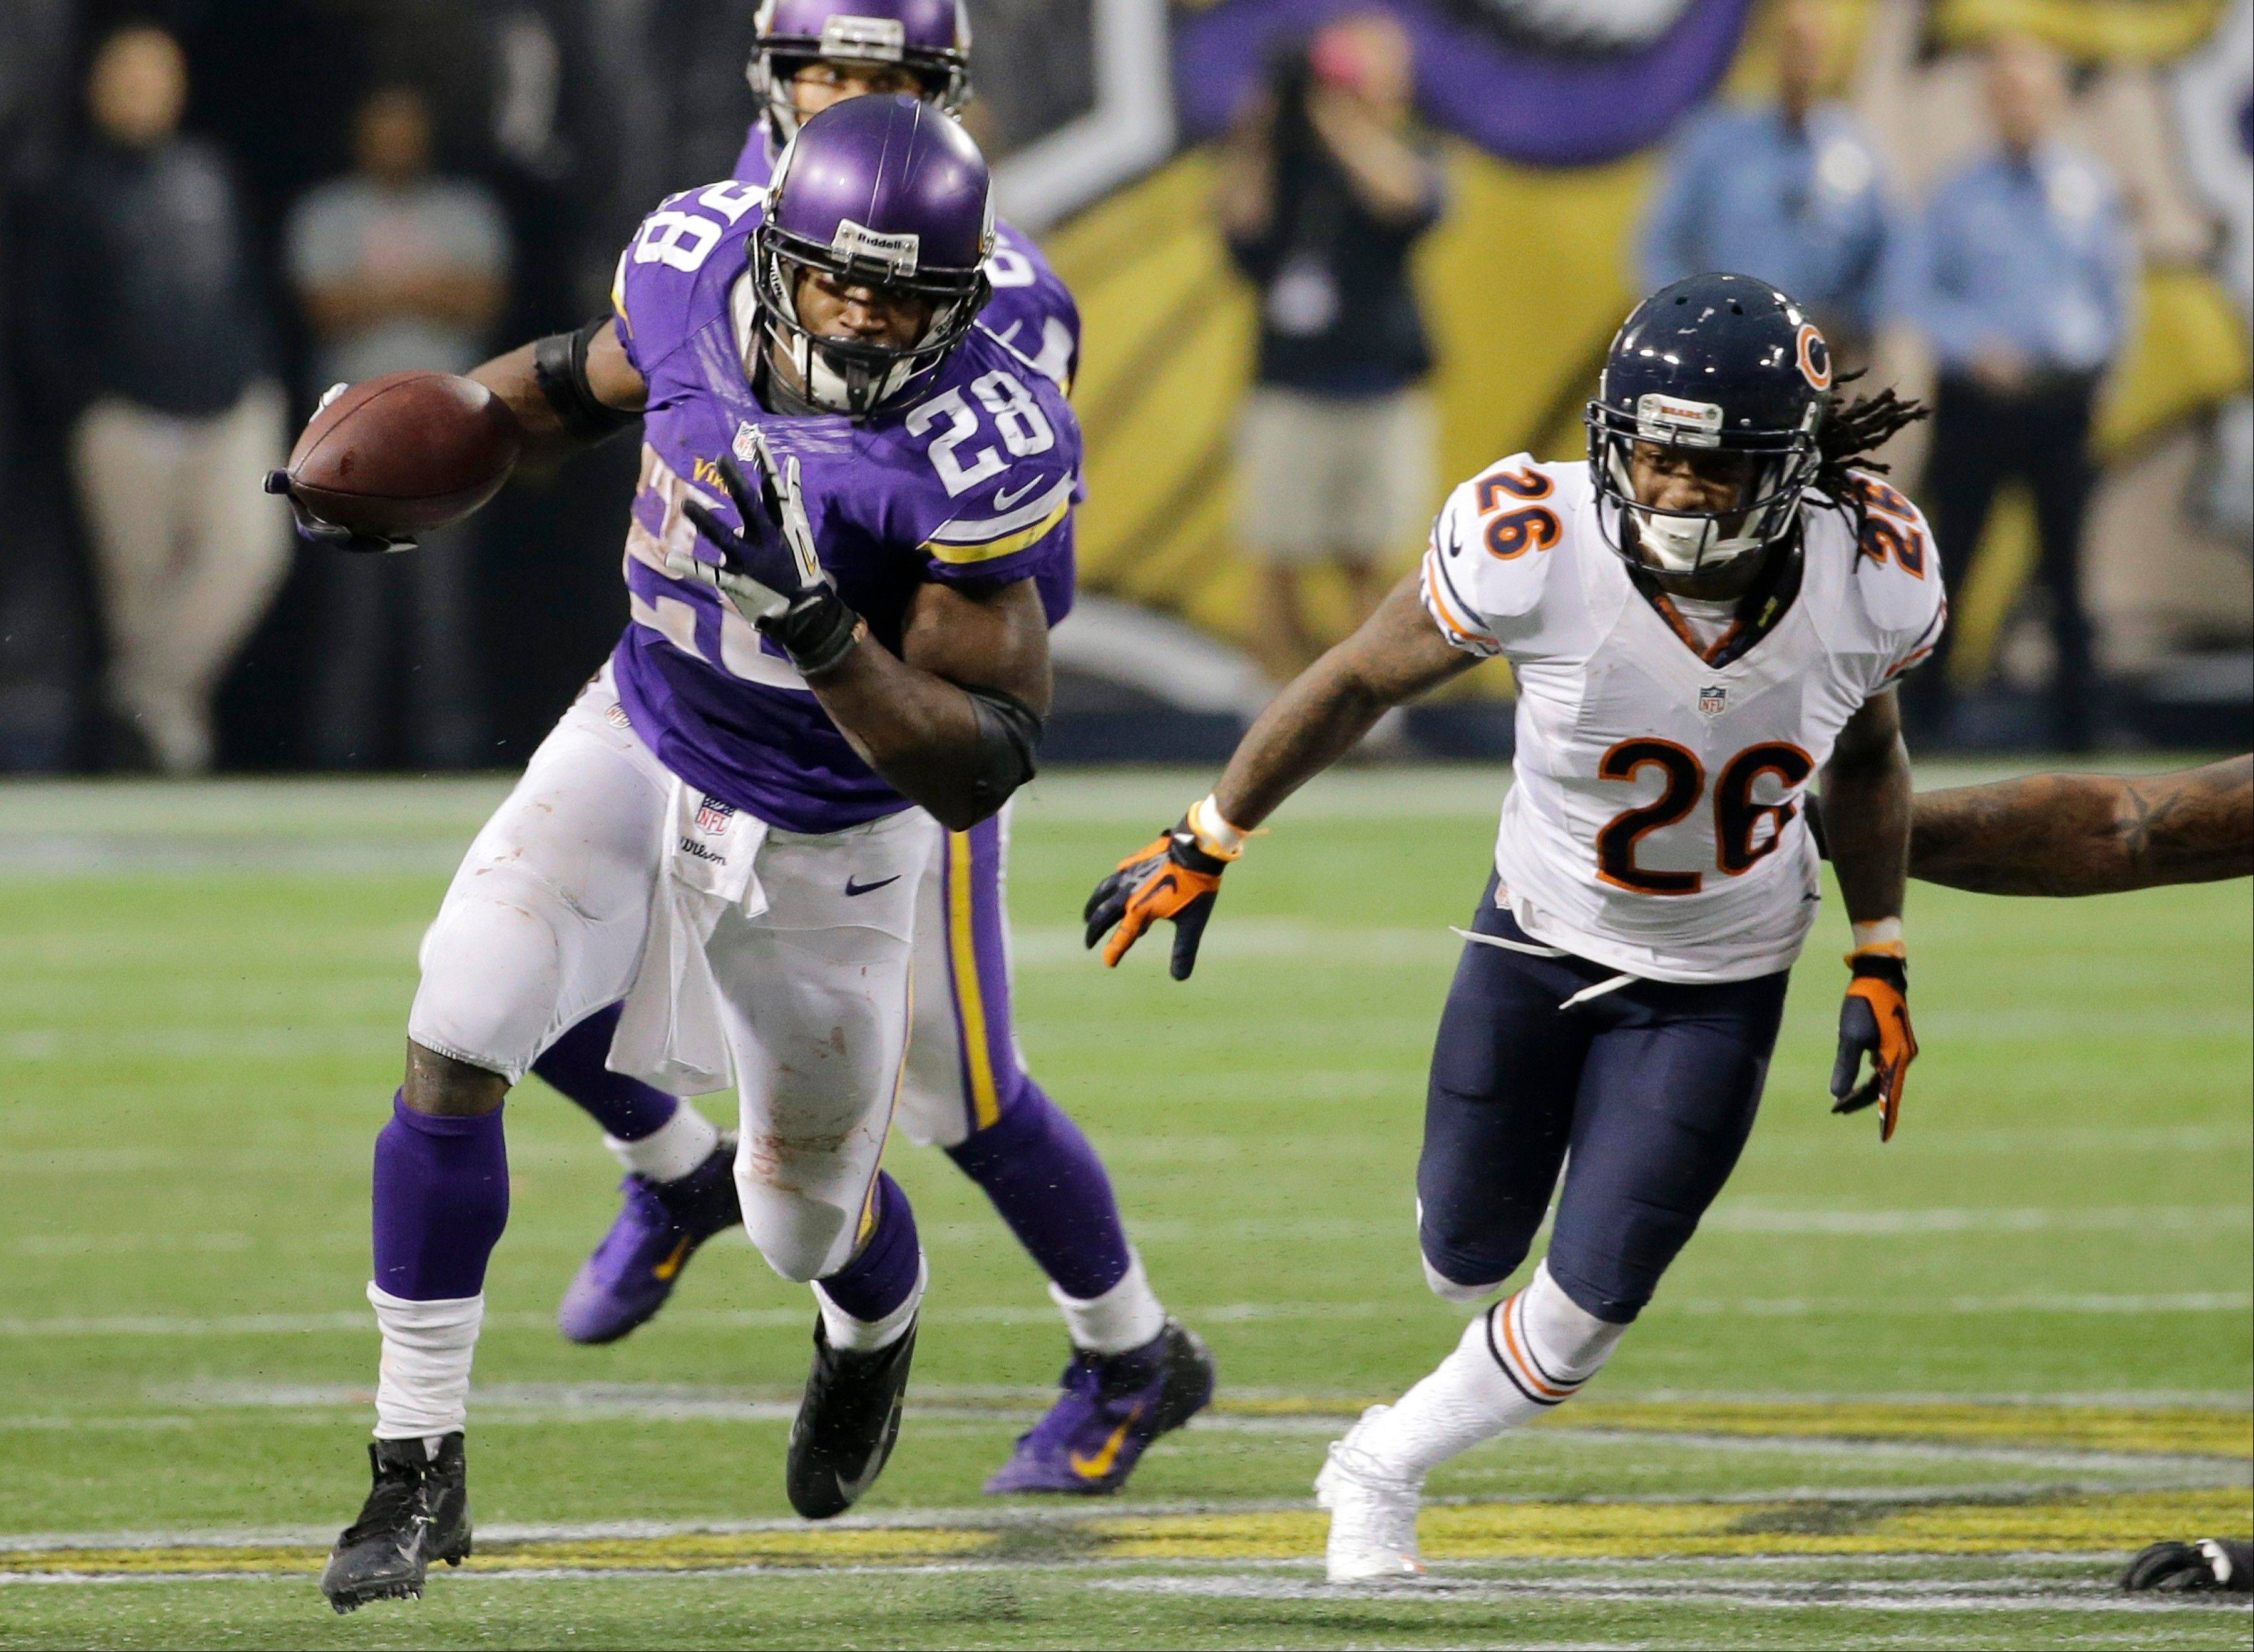 Gould, Trestman, leaky defense all contribute to demoralizing defeat